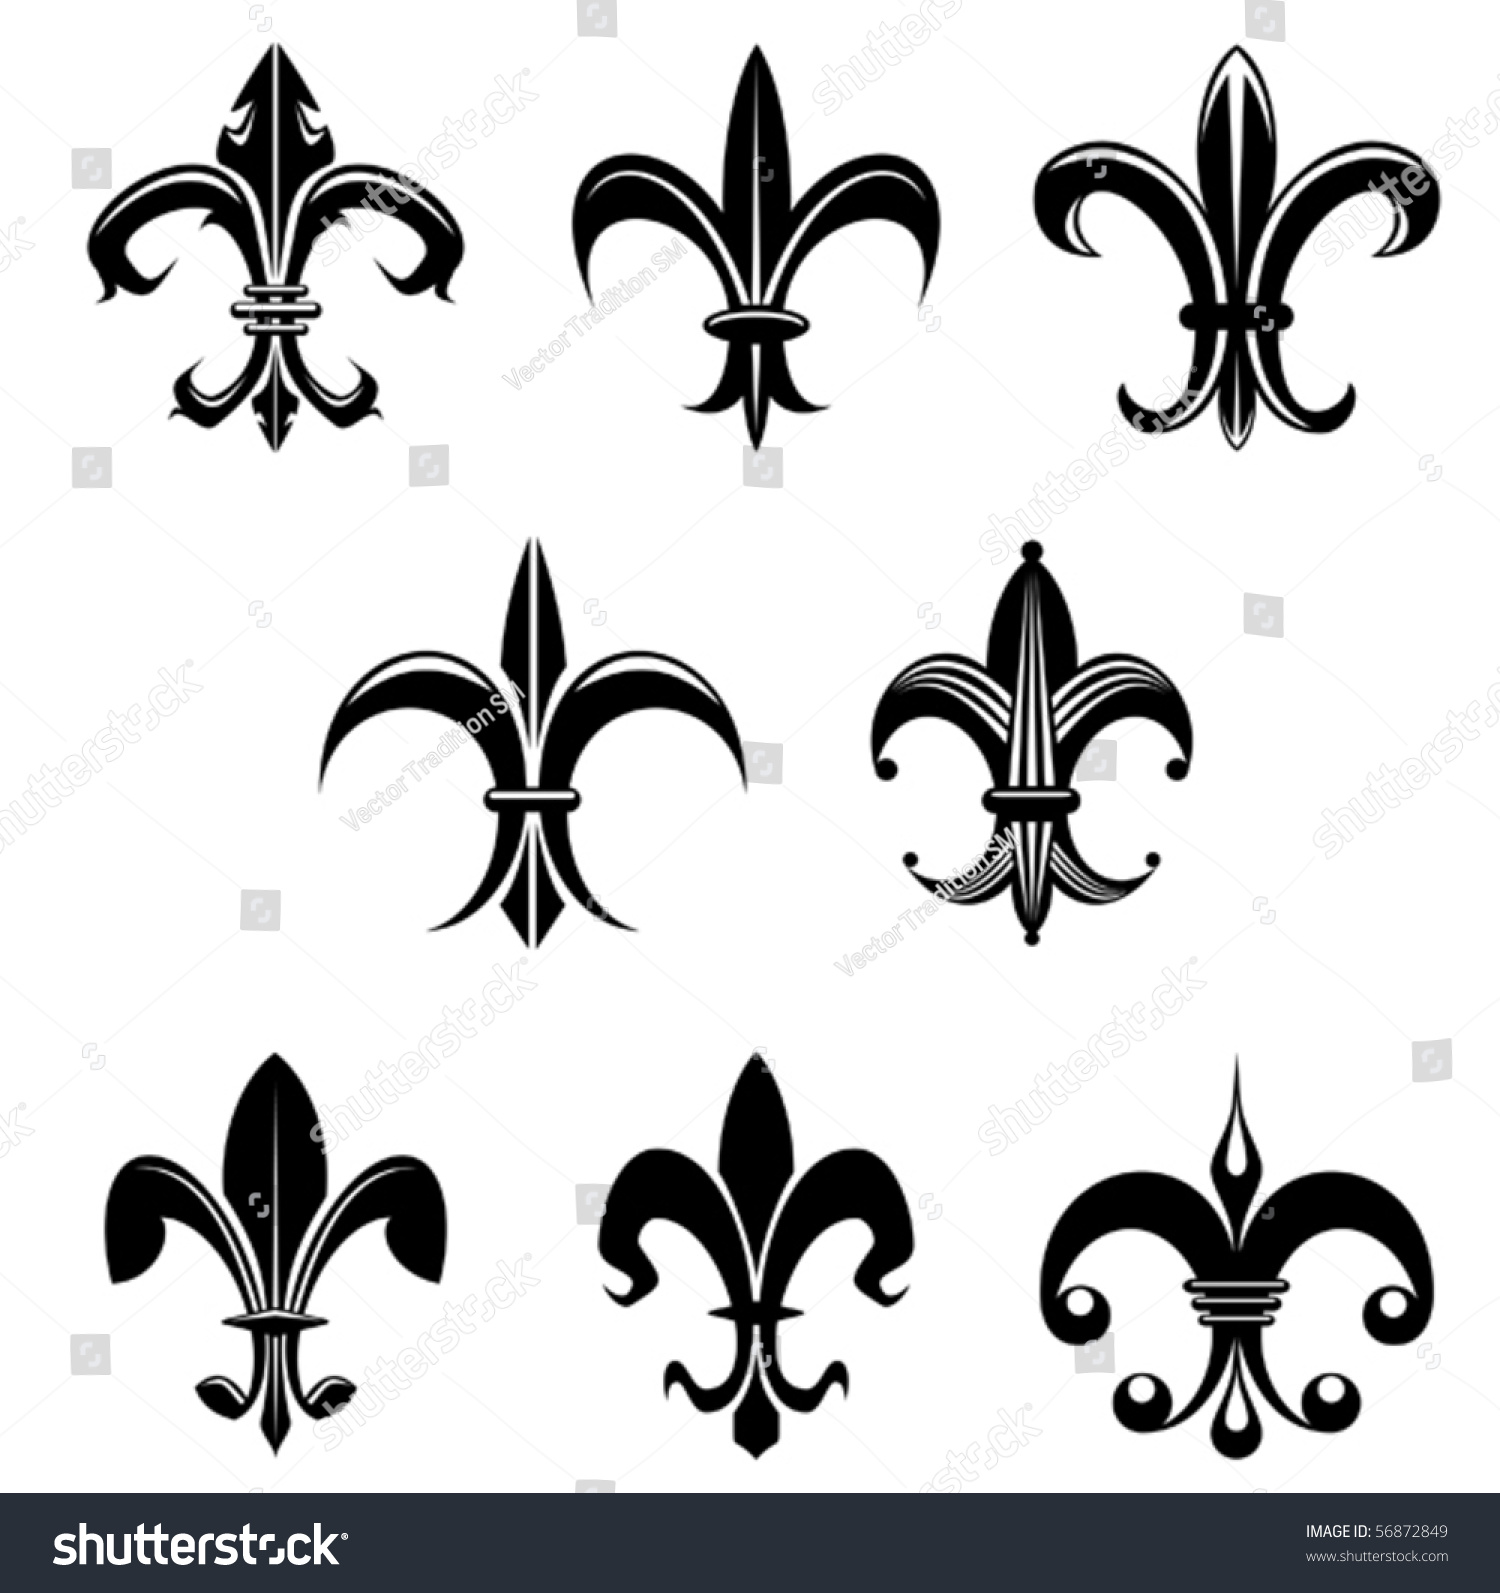 Royalty free royal french lily symbols also as 56872849 stock royal french lily symbols also as emblem or logo template jpeg version also available biocorpaavc Gallery